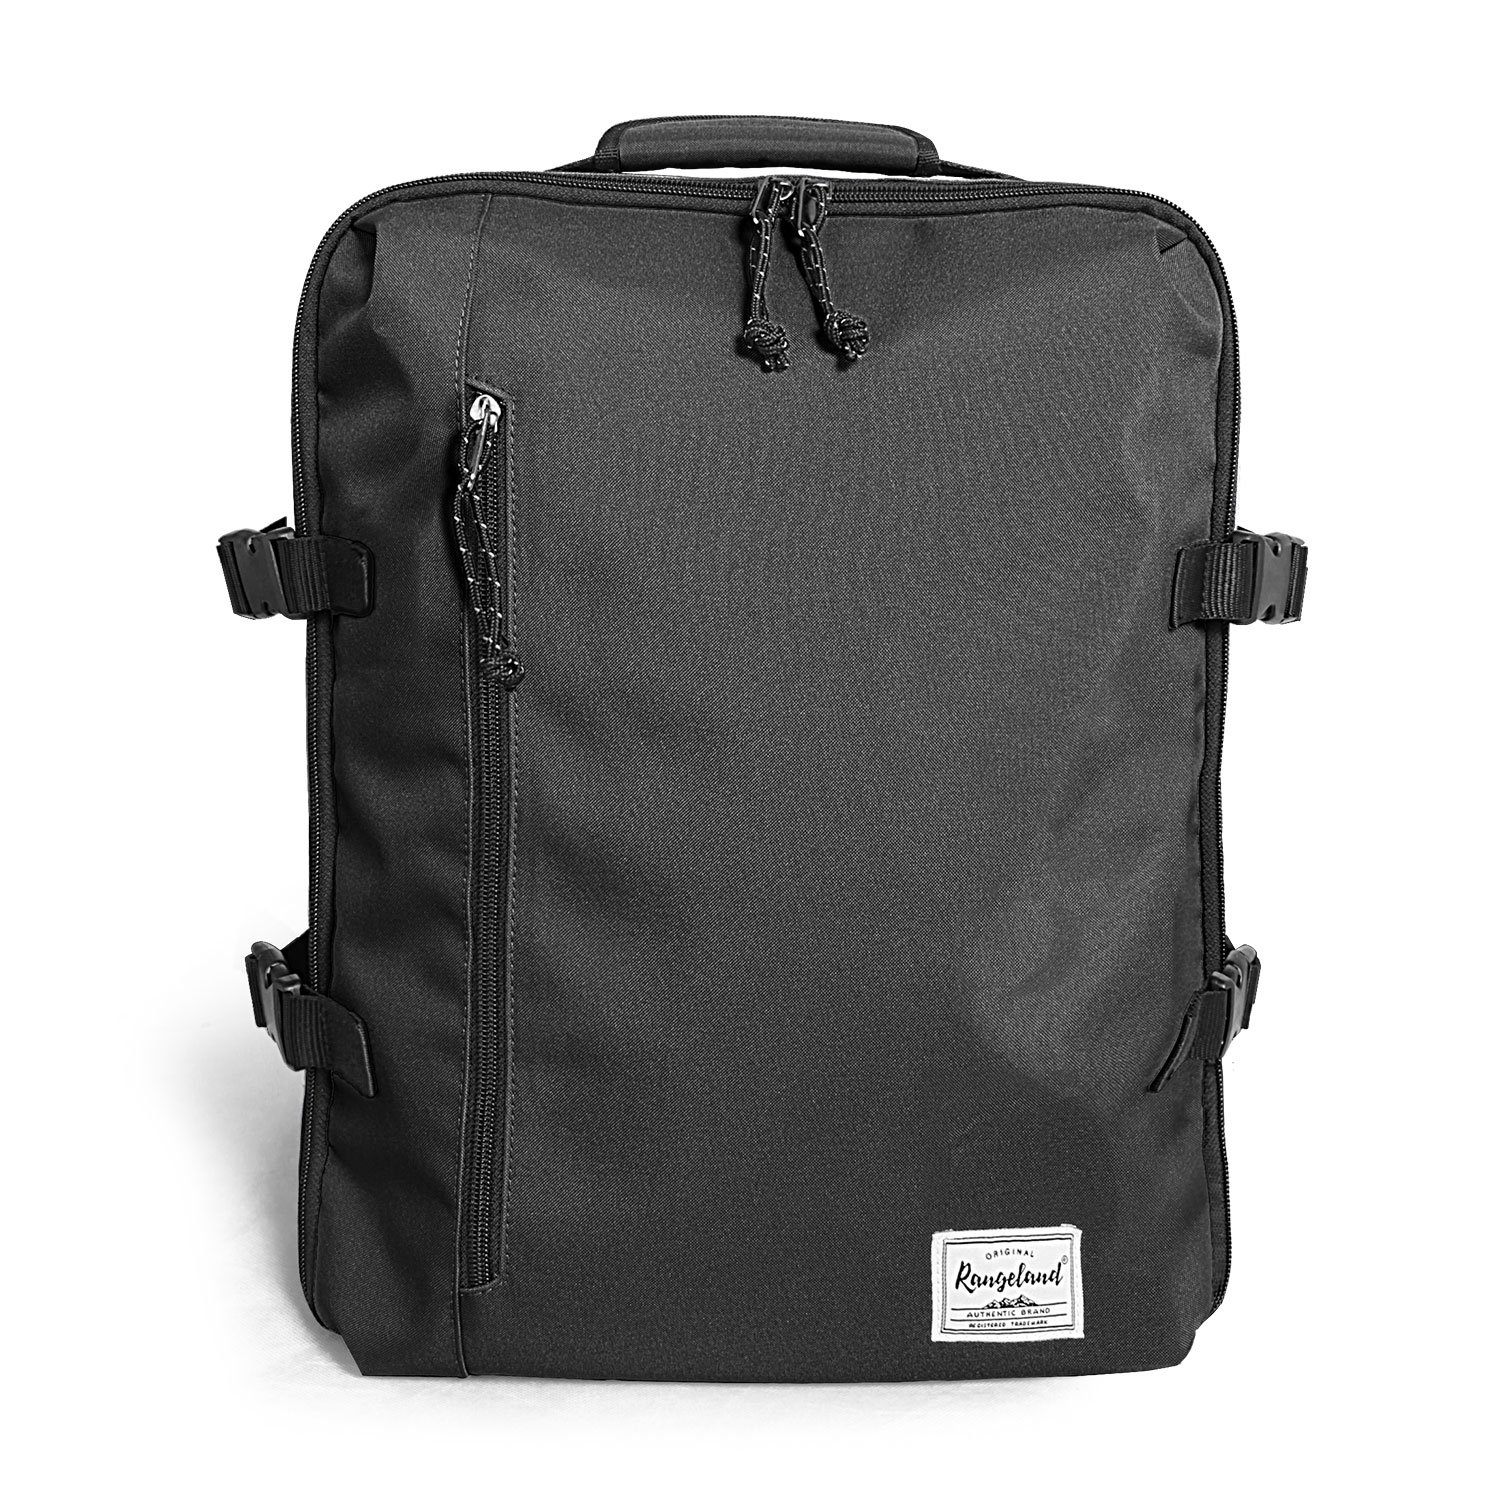 Rangeland New Business Trip Backpack 21L Flight Approved Carry on Daypack for 15 inch Laptop